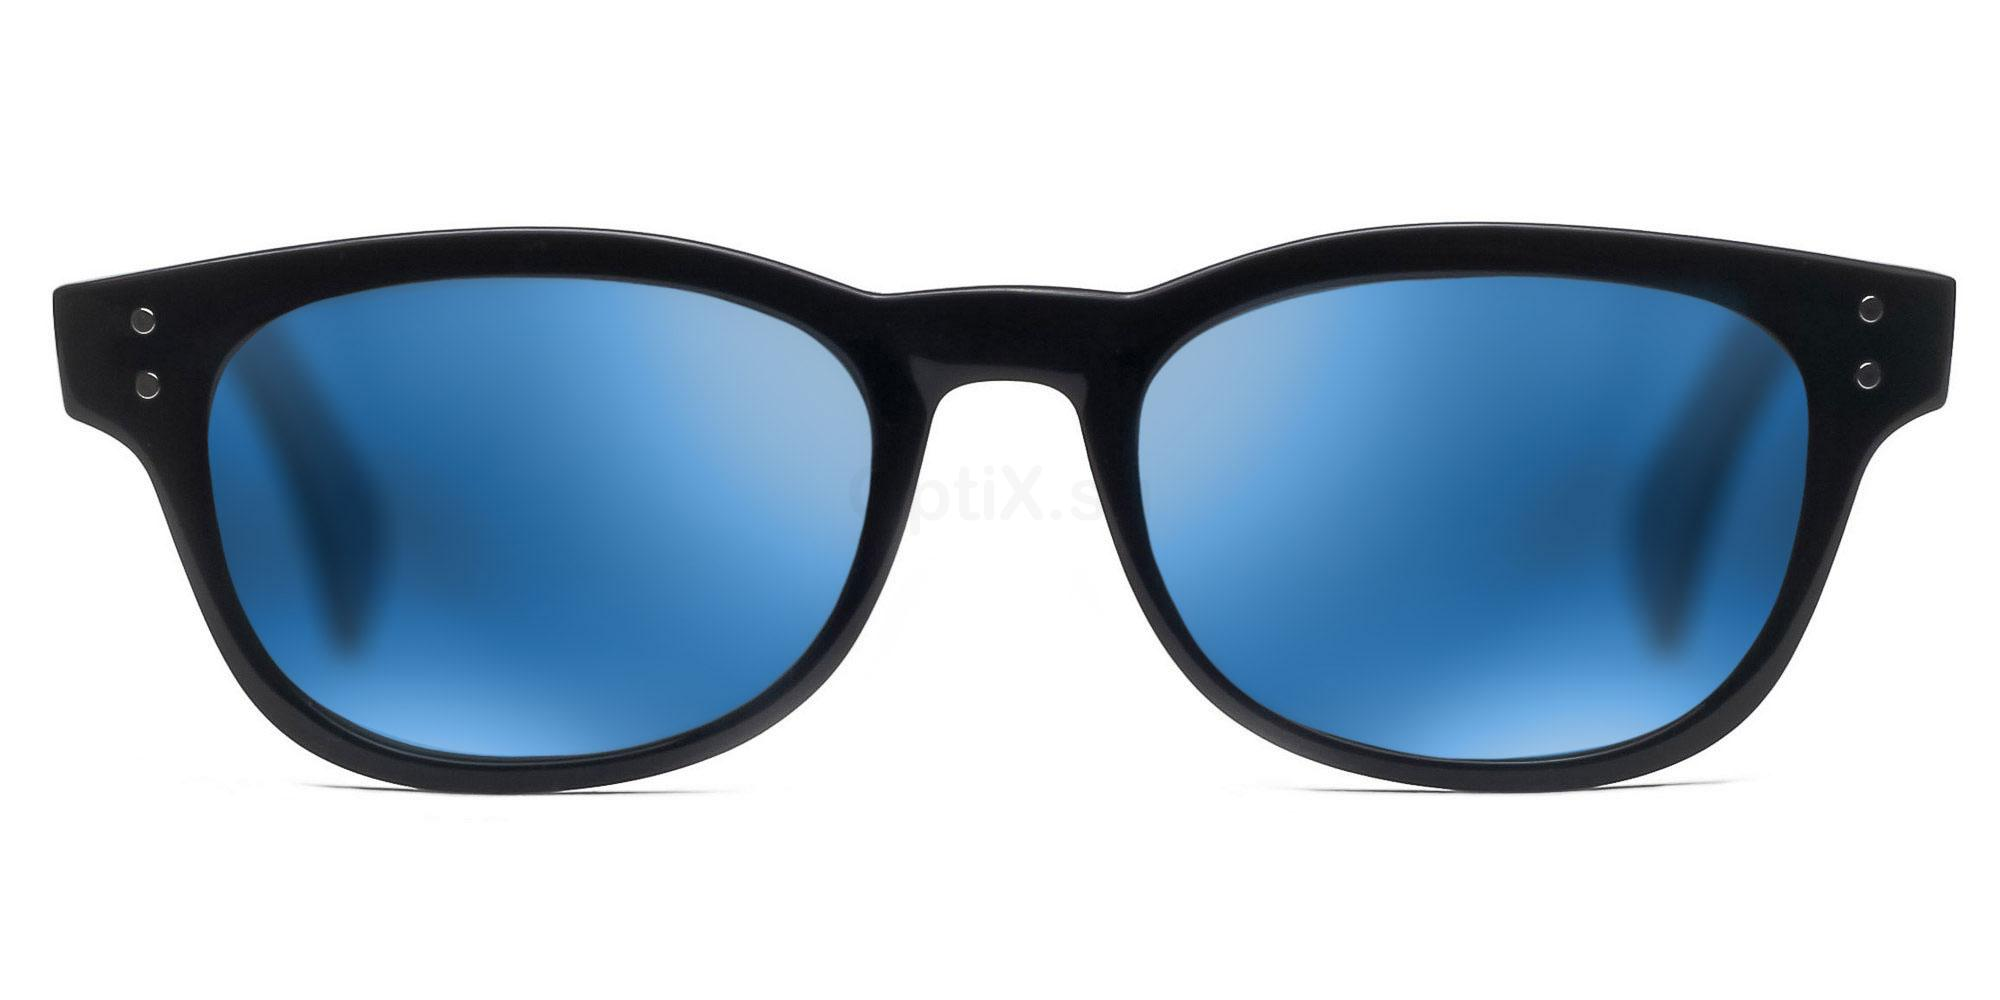 C01 Polarized Grey with Blue Mirror P2249 Shiny Black (Mirrored Polarized) Sunglasses, Savannah